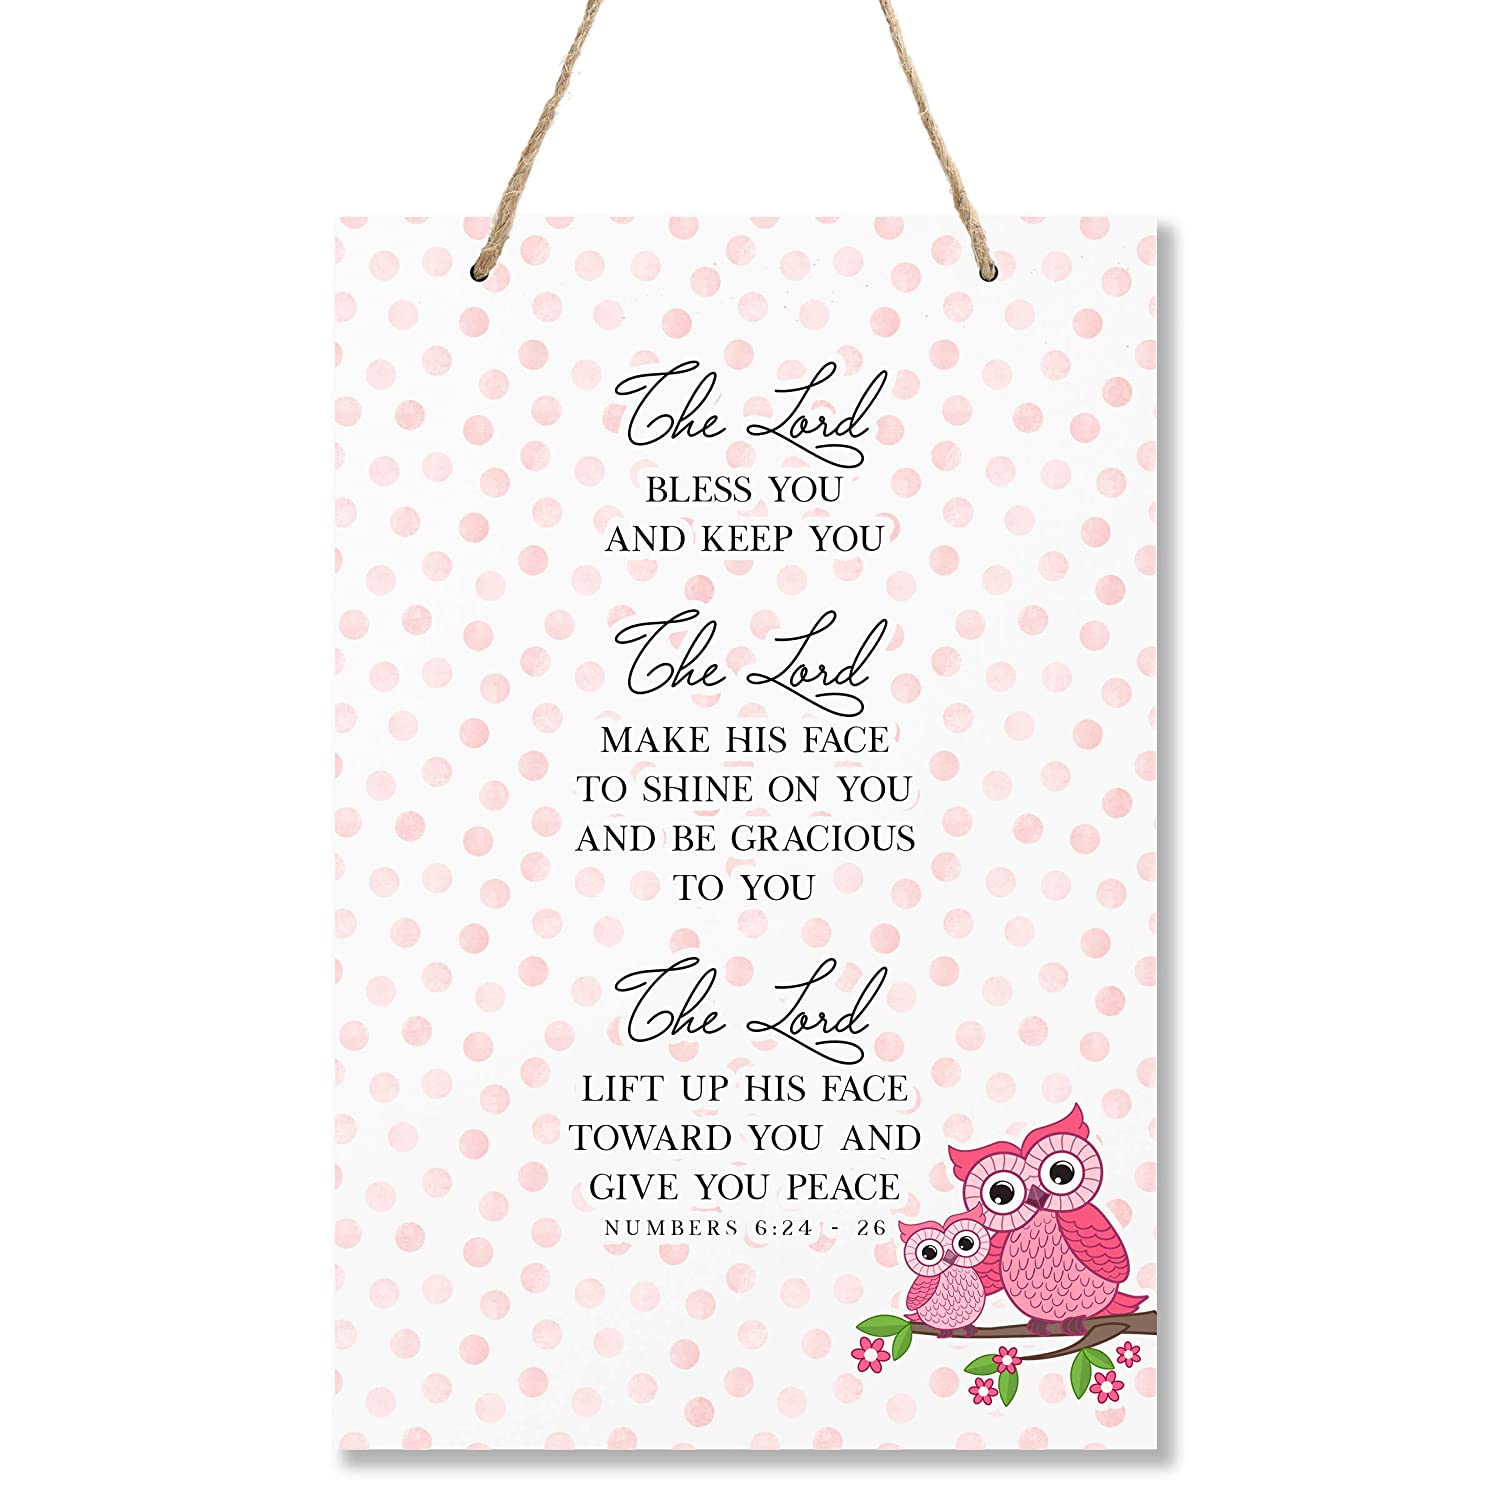 """LifeSong Milestones Owl The Lord Bless You Wall Decor Decorations Signs for Kids Nursery Baby/'s Boys and Girls Room Toddlers Size 8/"""" x 12/"""" Proudly Made in USA Bedroom Hallways"""